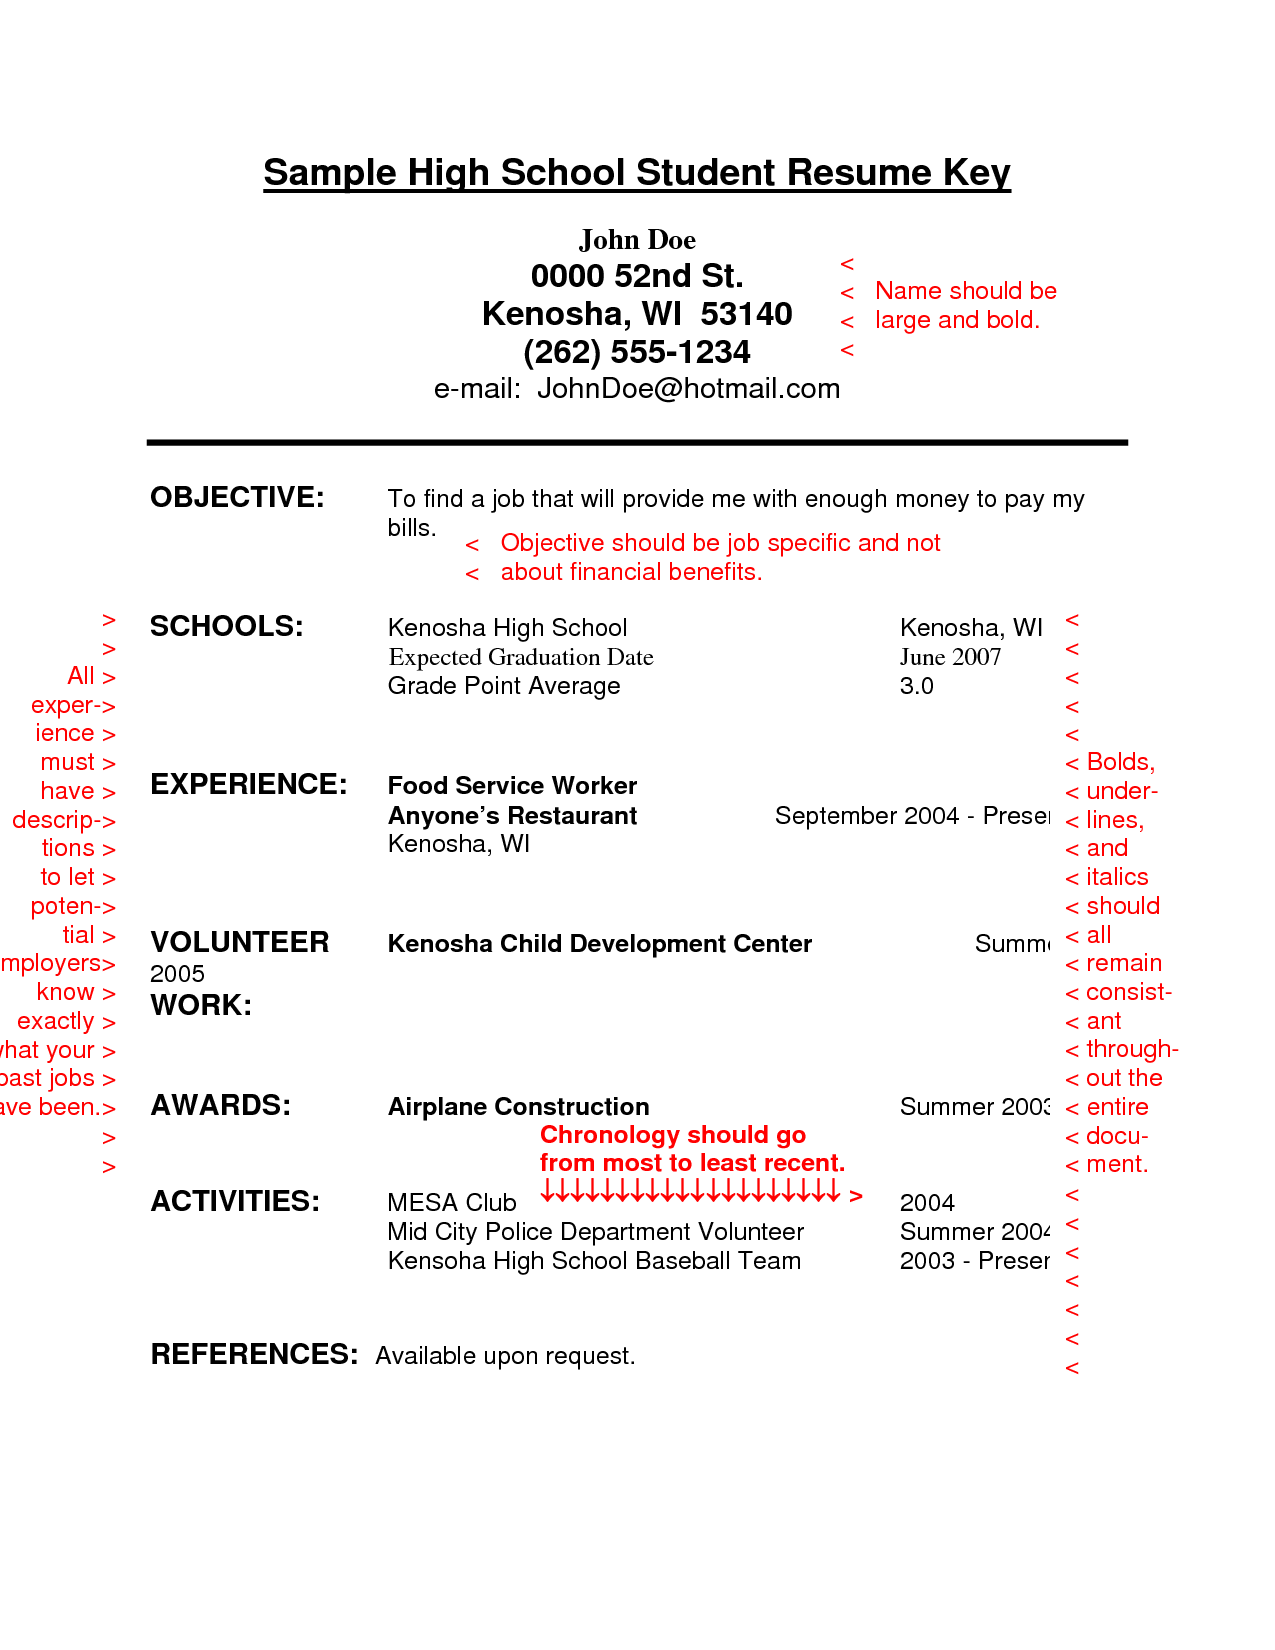 Example of a work resume solarfm 6 resume job description examples manager resume yelopaper Images